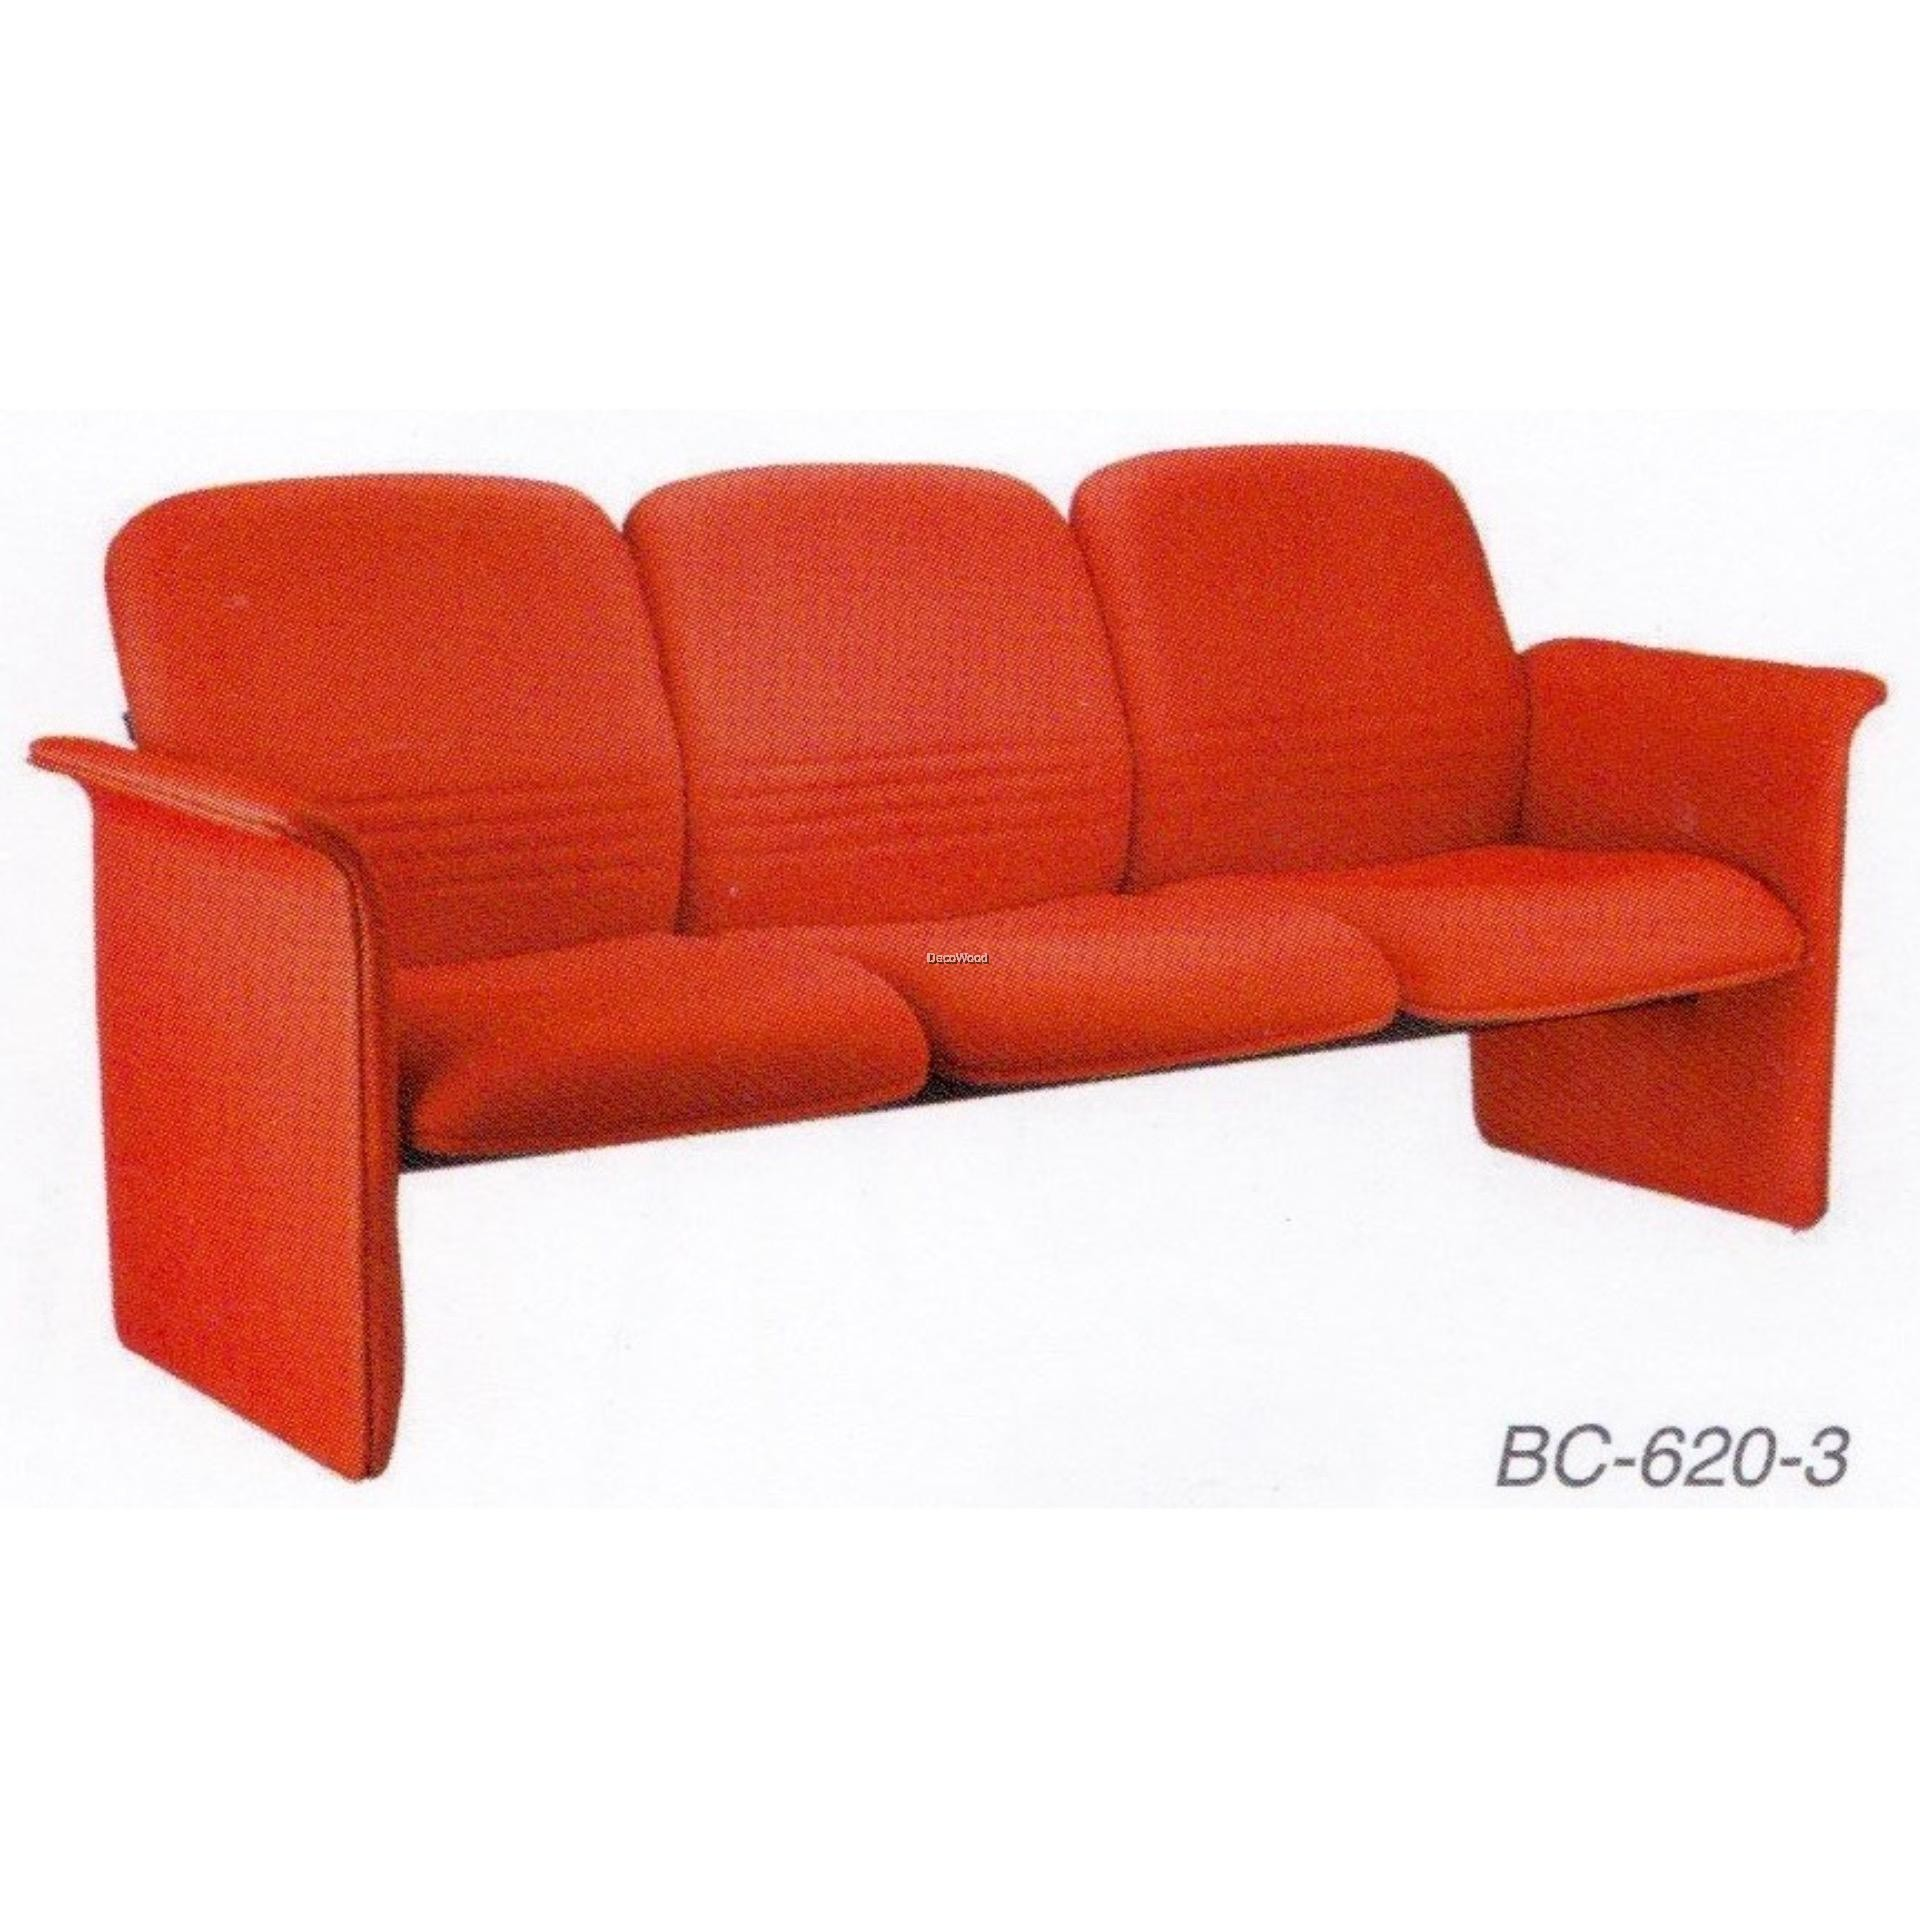 Astounding Deco Waiting Area 3 Seater Cushion Link Chair Hall Clinics Office Red Color L1845Mm X D650Mm X H830Mm Pre Order 2 Weeks Pabps2019 Chair Design Images Pabps2019Com